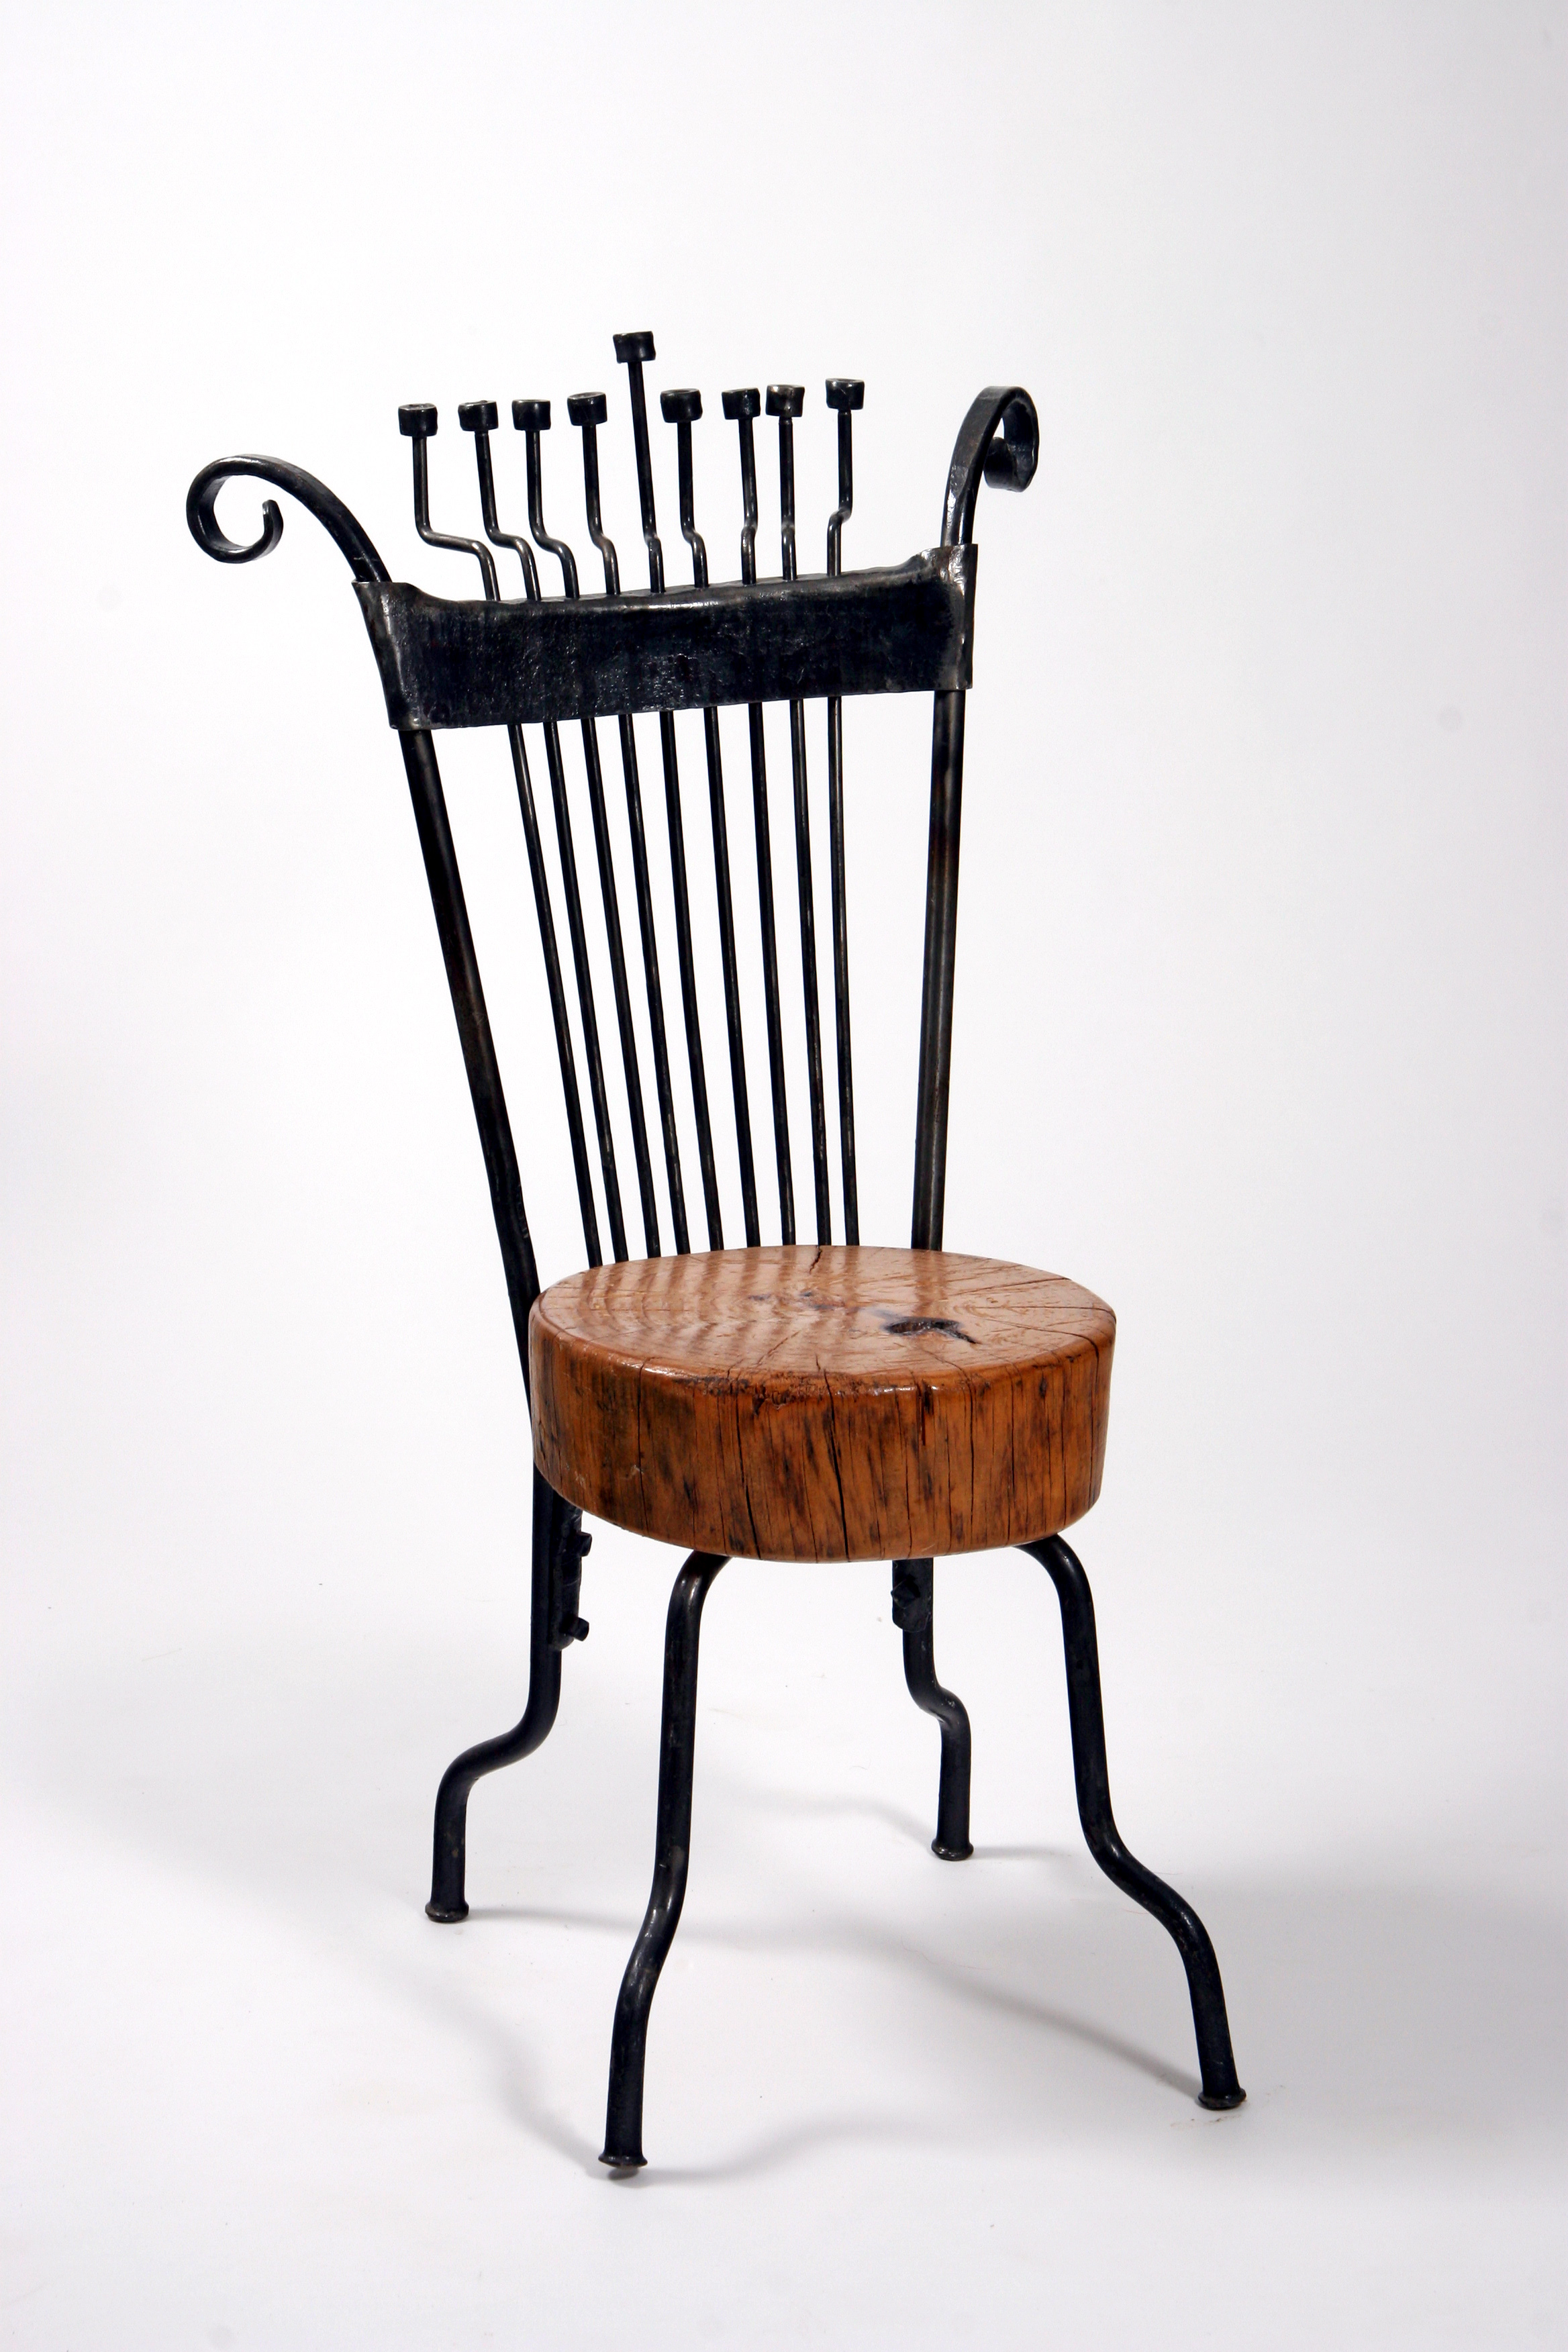 'Hanukkah Chair Menorah' – Chair Menorah with Chair of Iron & Pine